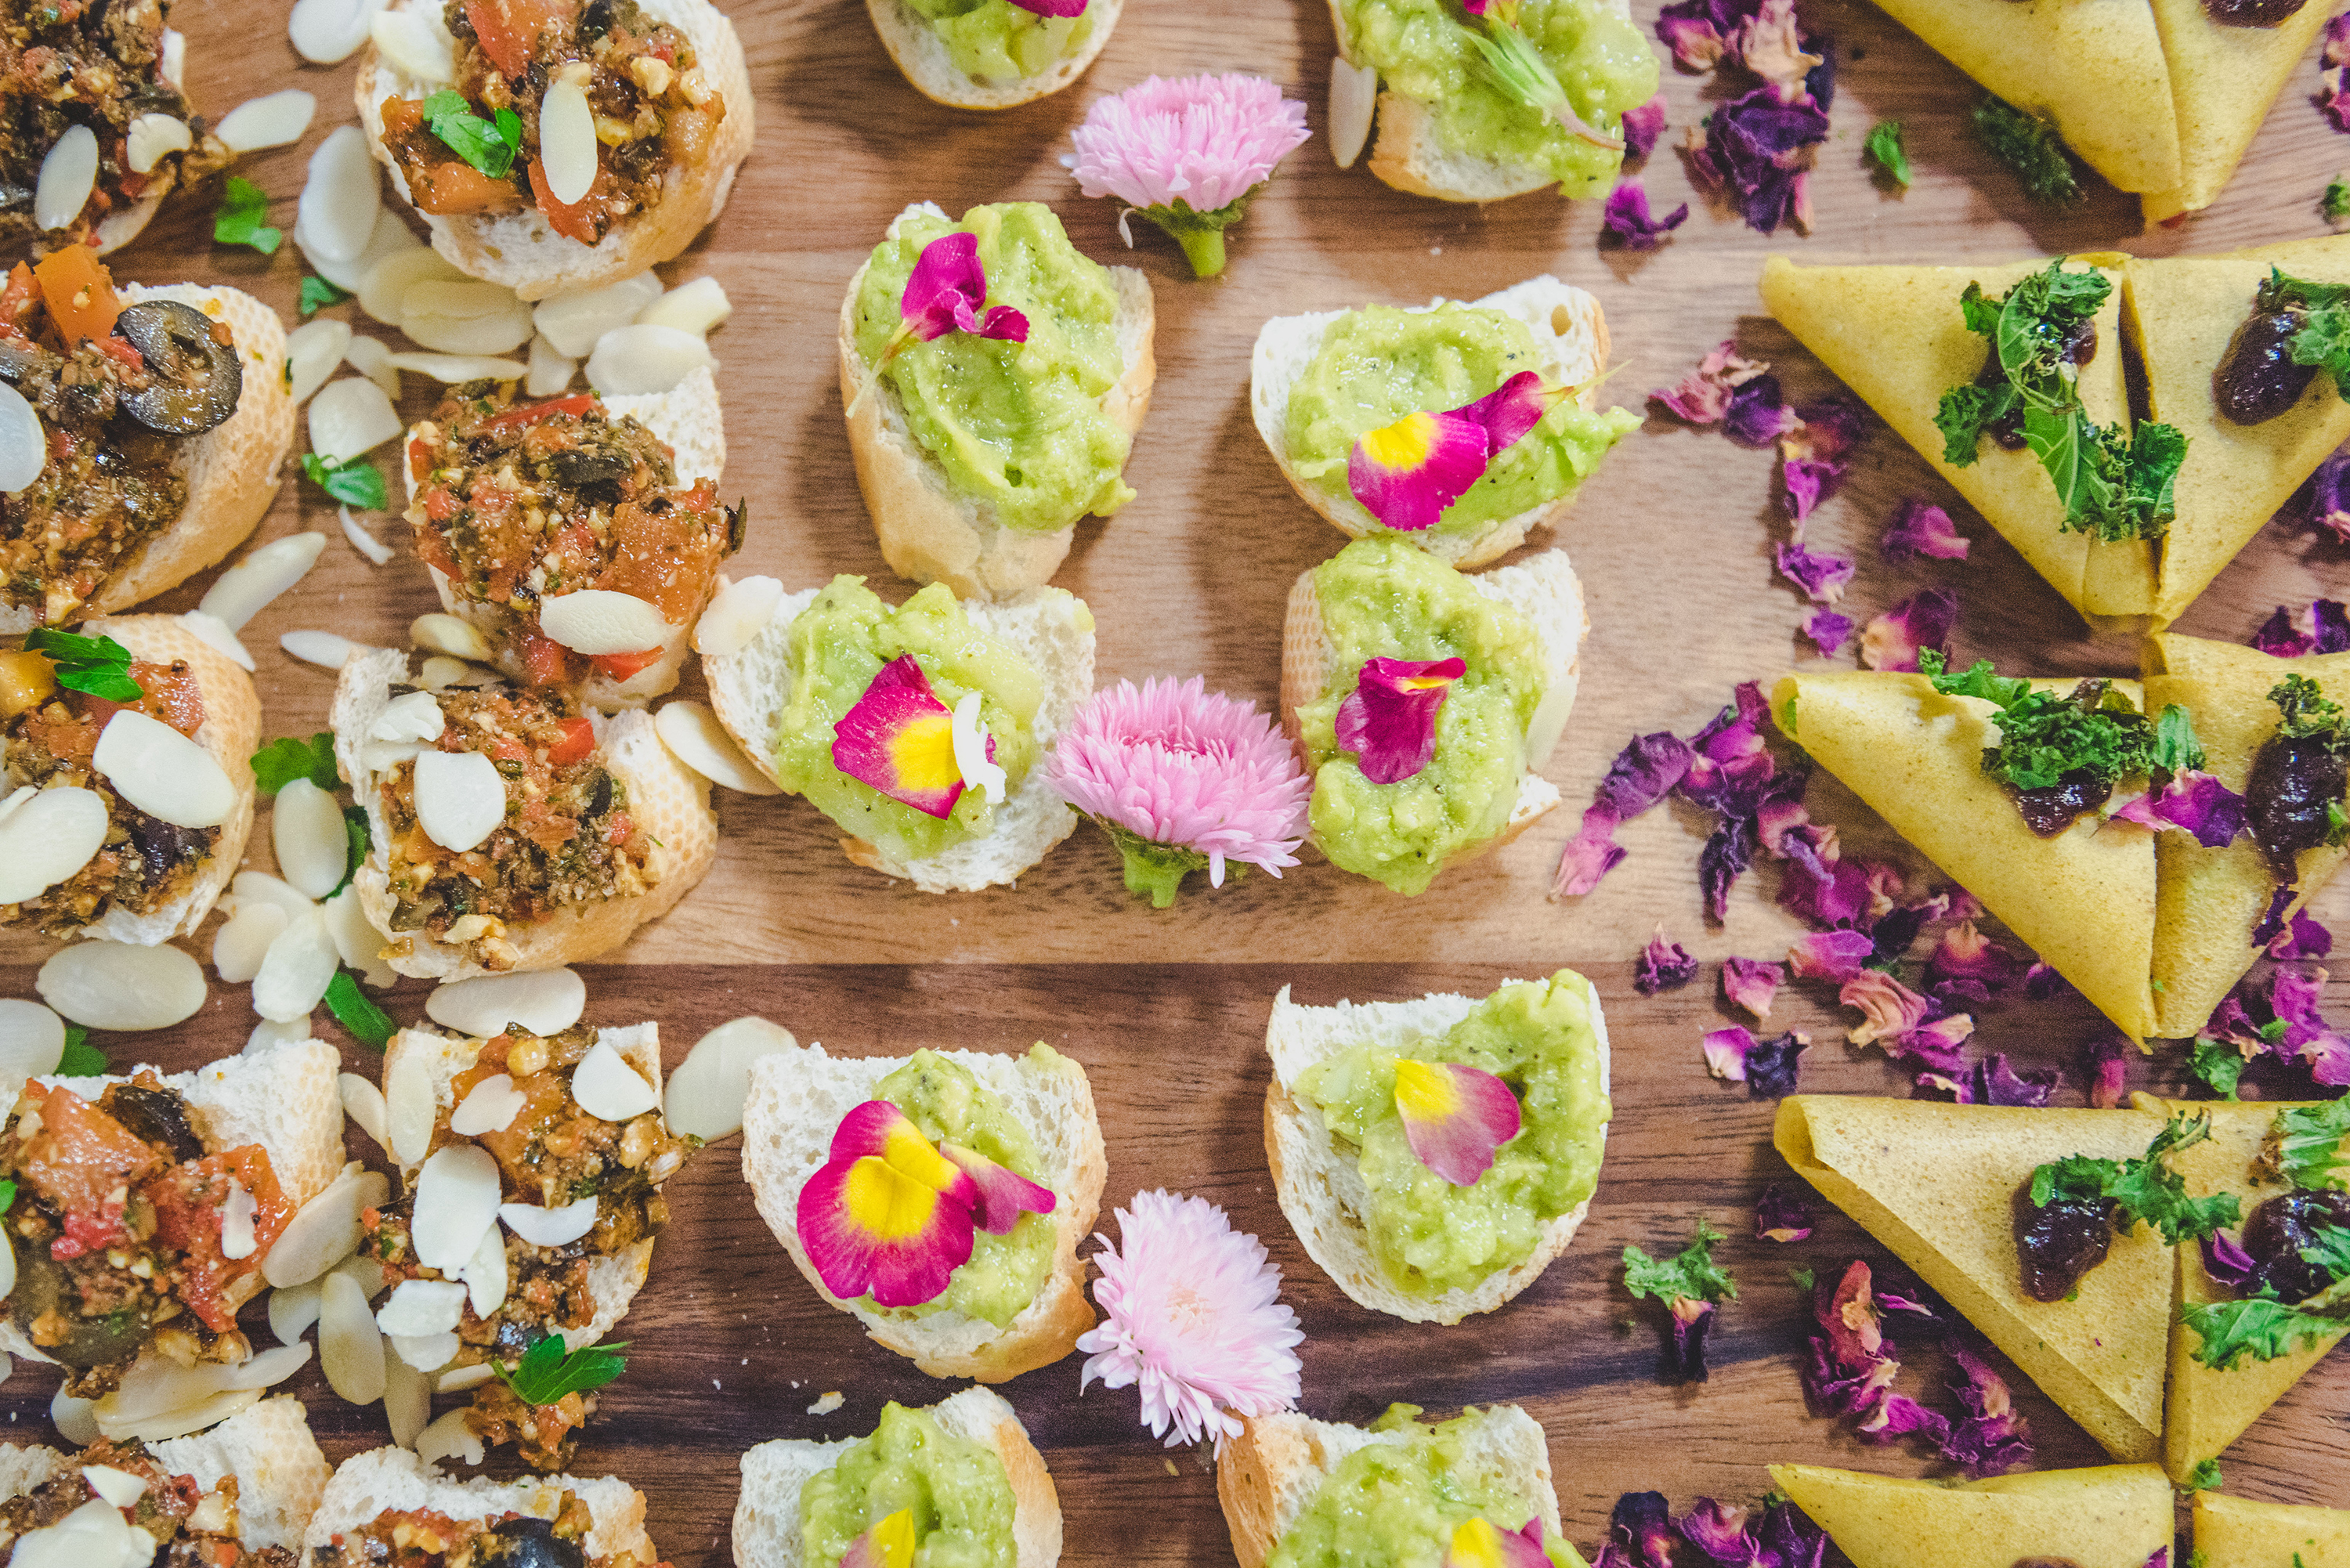 Vegan canapes from Nature.London